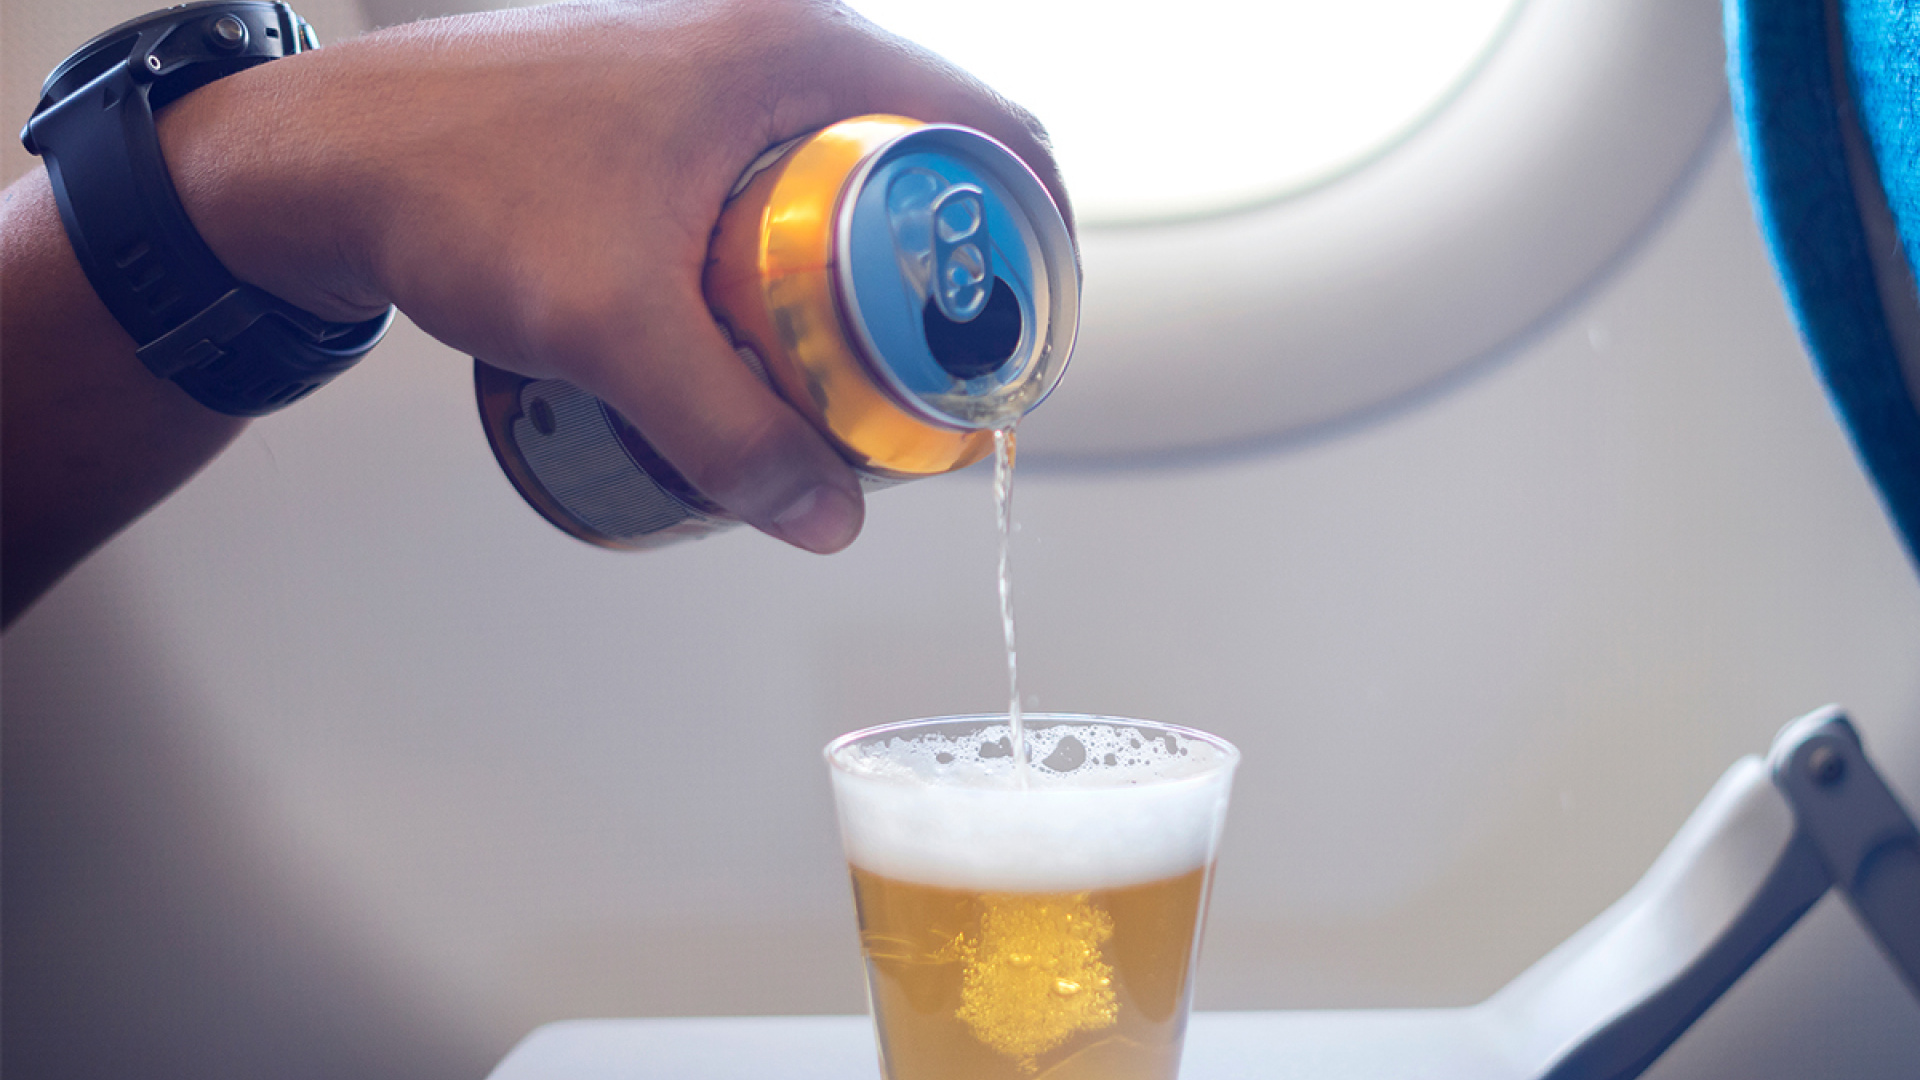 airlines ban alcohol COVID-19